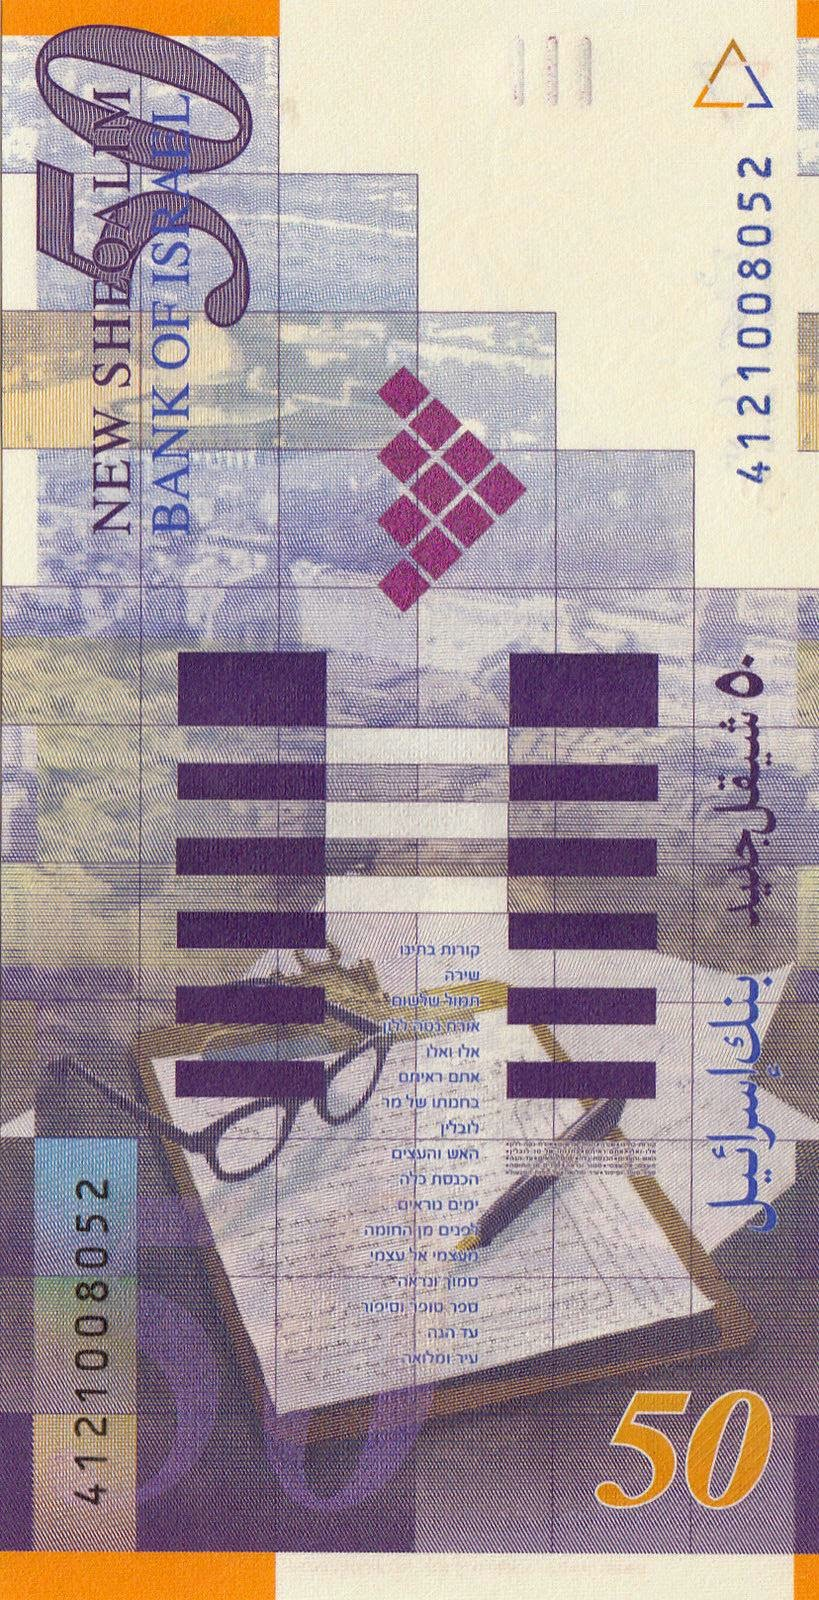 Israeli currency 50 New Sheqalim banknote 1999 Bank of Israel